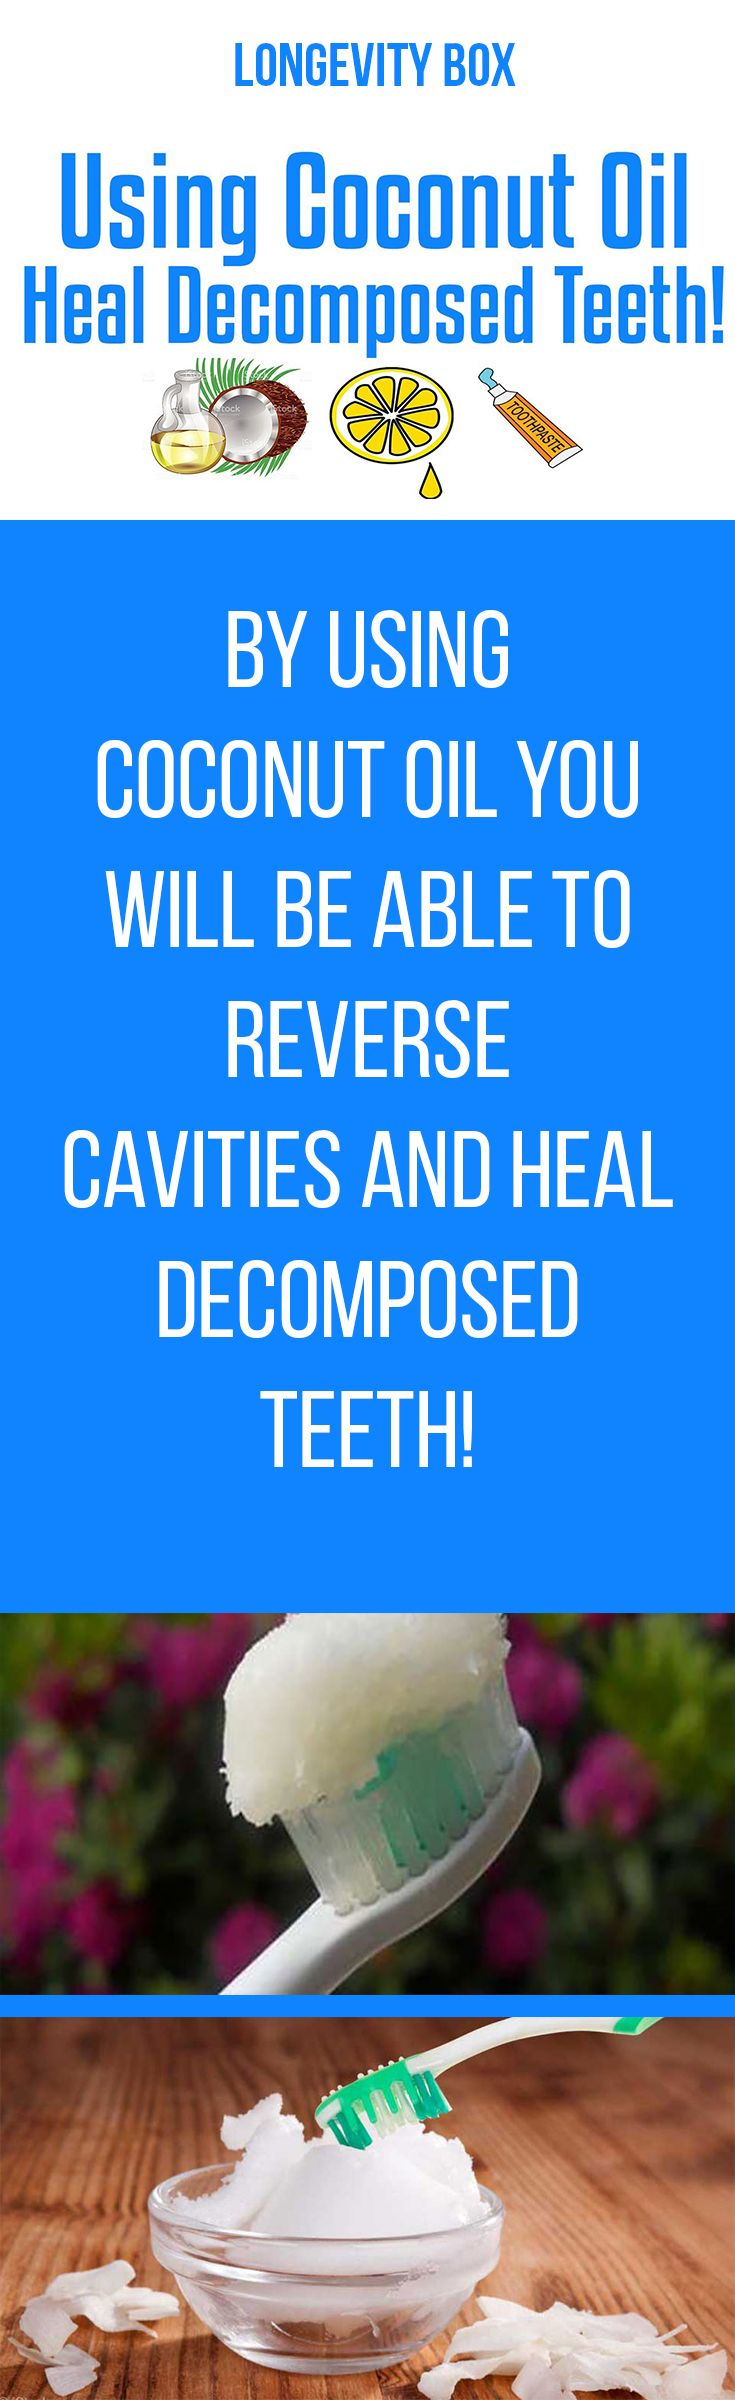 Heal decomposed teeth with coconut oil~ Ingredients:  Half cup of coconut oil 2-3 tablespoons of baking soda 15-30 drops of essential oil (lemon, peppermint, thieves) Preparation: Mix the ingredients together and use the mixture instead of your usual toothpaste.